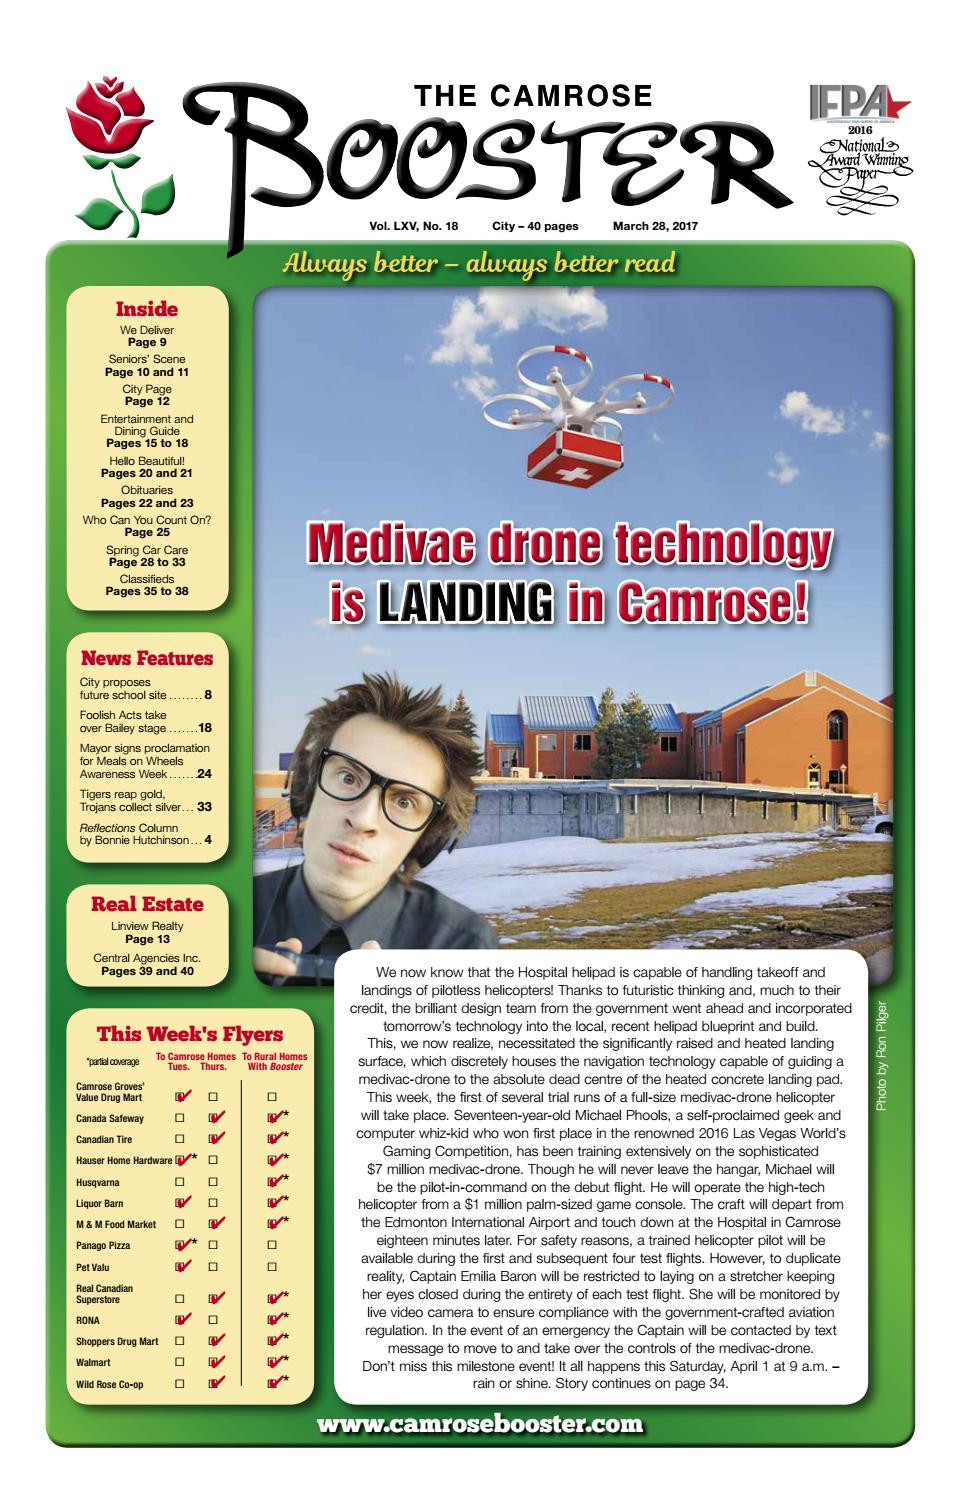 Jd Hardwood Flooring Of March 28 2017 Camrose Booster by the Camrose Booster issuu Pertaining to Page 1